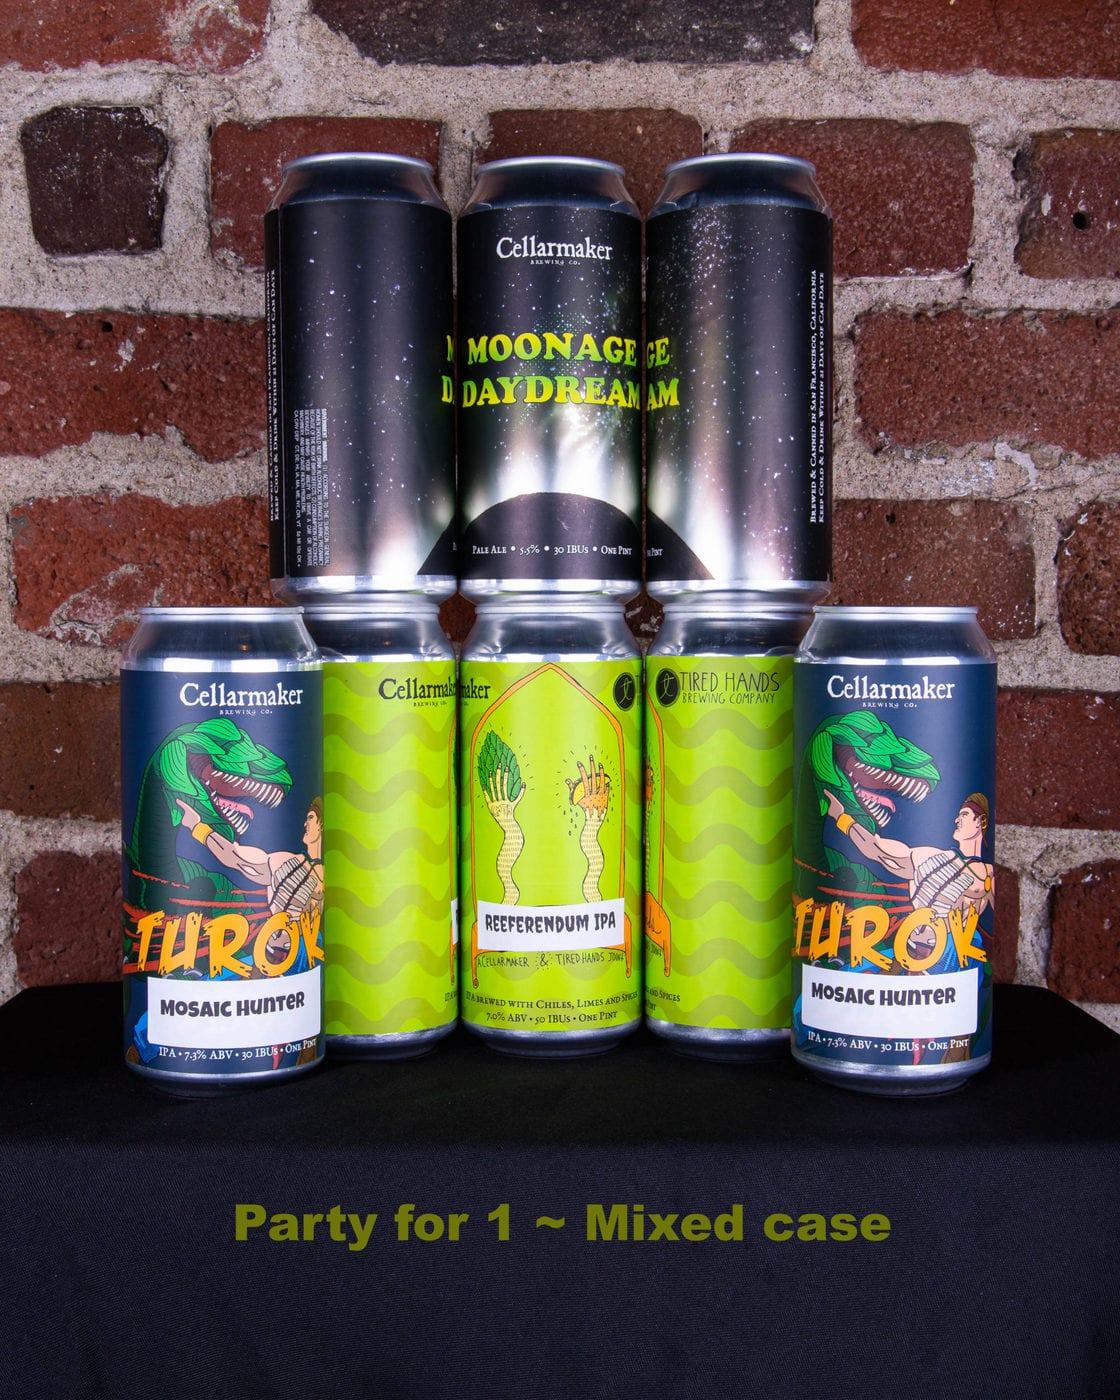 24 CANS Mixed Case! Moonage, Turok & Reeferendum ~ Shipping Tuesday 3/24